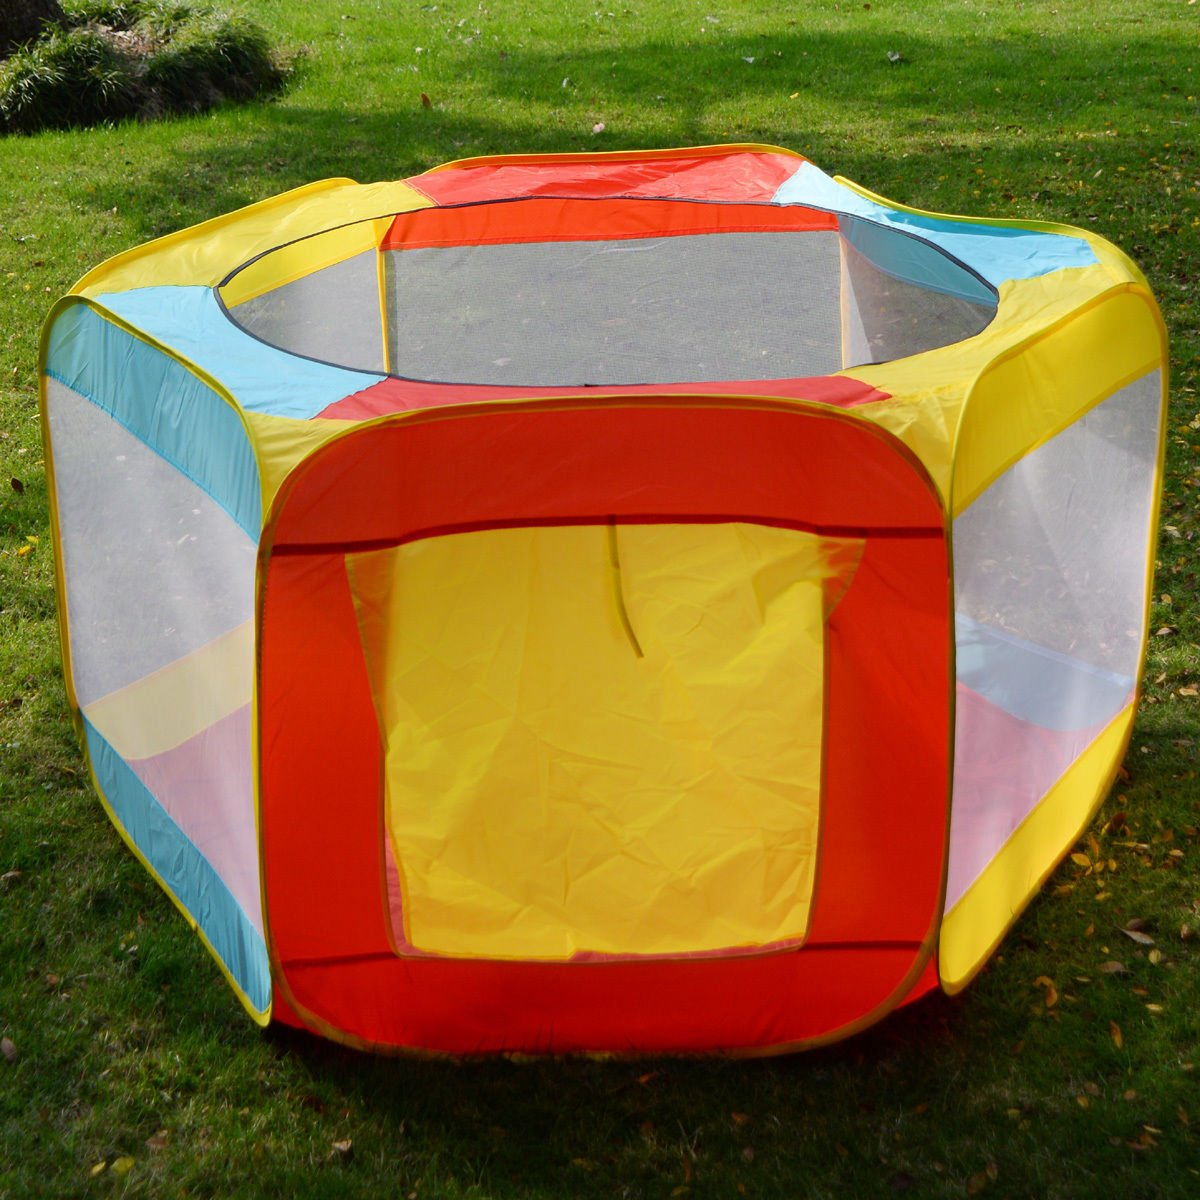 New Baby Safety Playpen Toddler Creeping Play Yard Kids Folding Play Tent Indoor